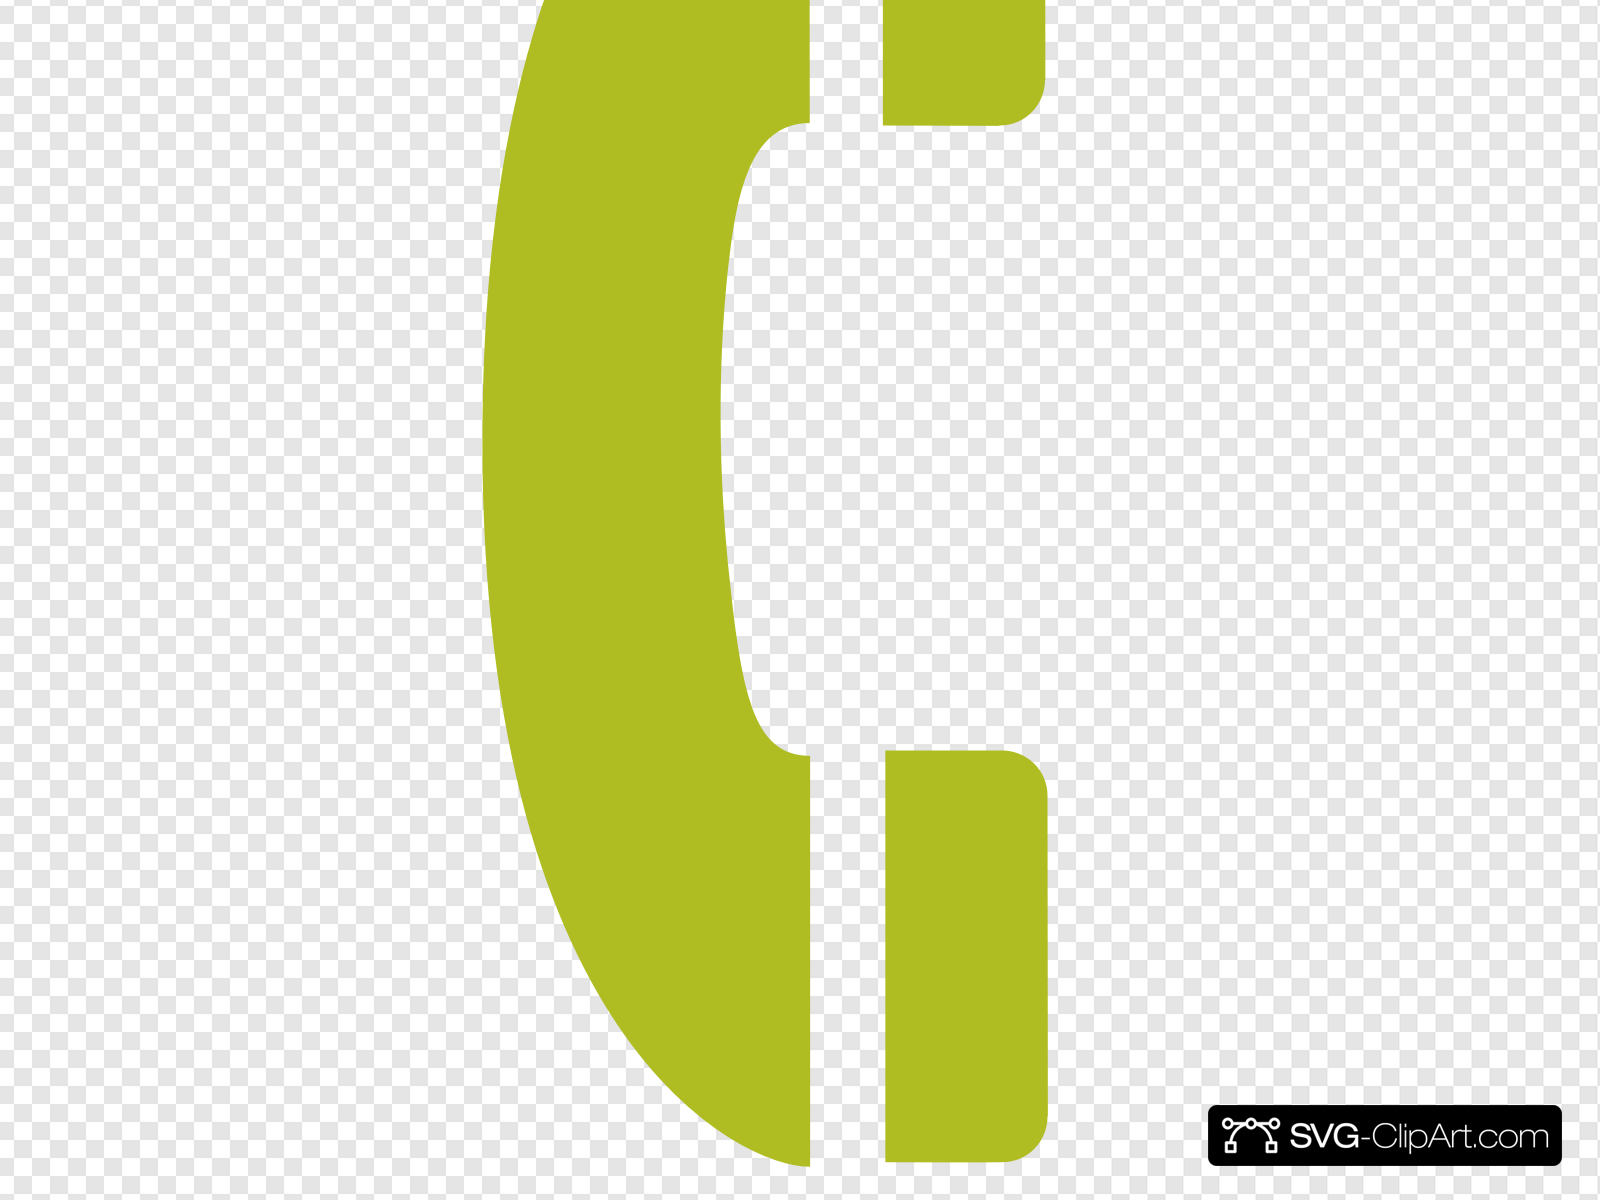 Phone handset clipart banner royalty free Telephone Handset Clip art, Icon and SVG - SVG Clipart banner royalty free